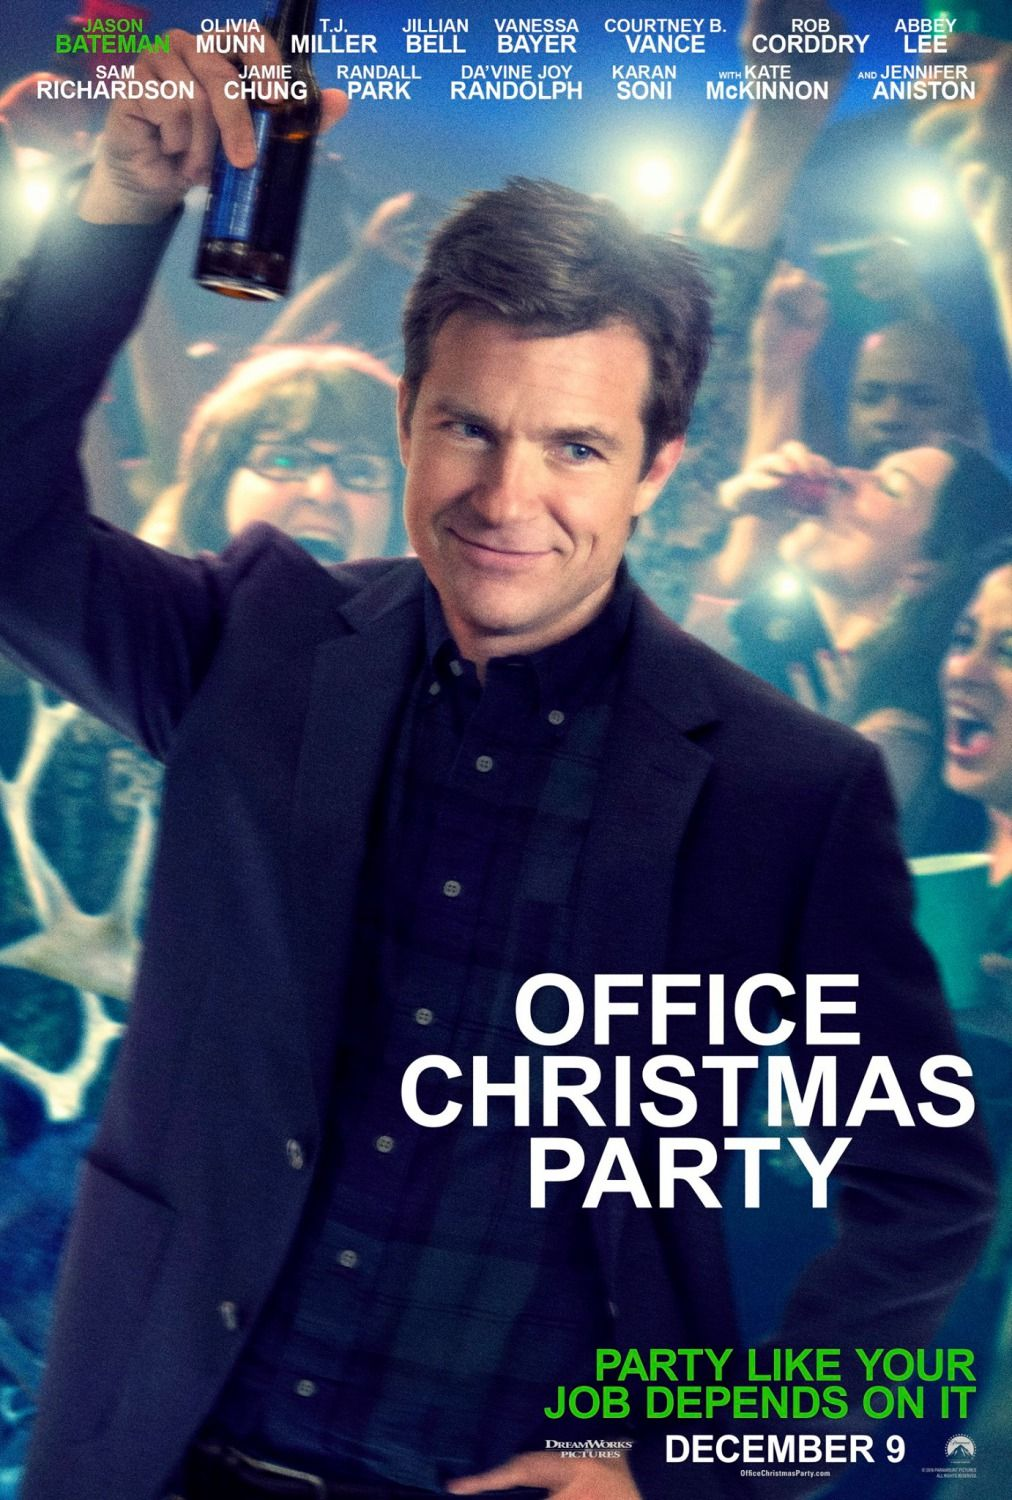 Office Christmas Party Jason Bateman Poster | Posters | Christmas ...